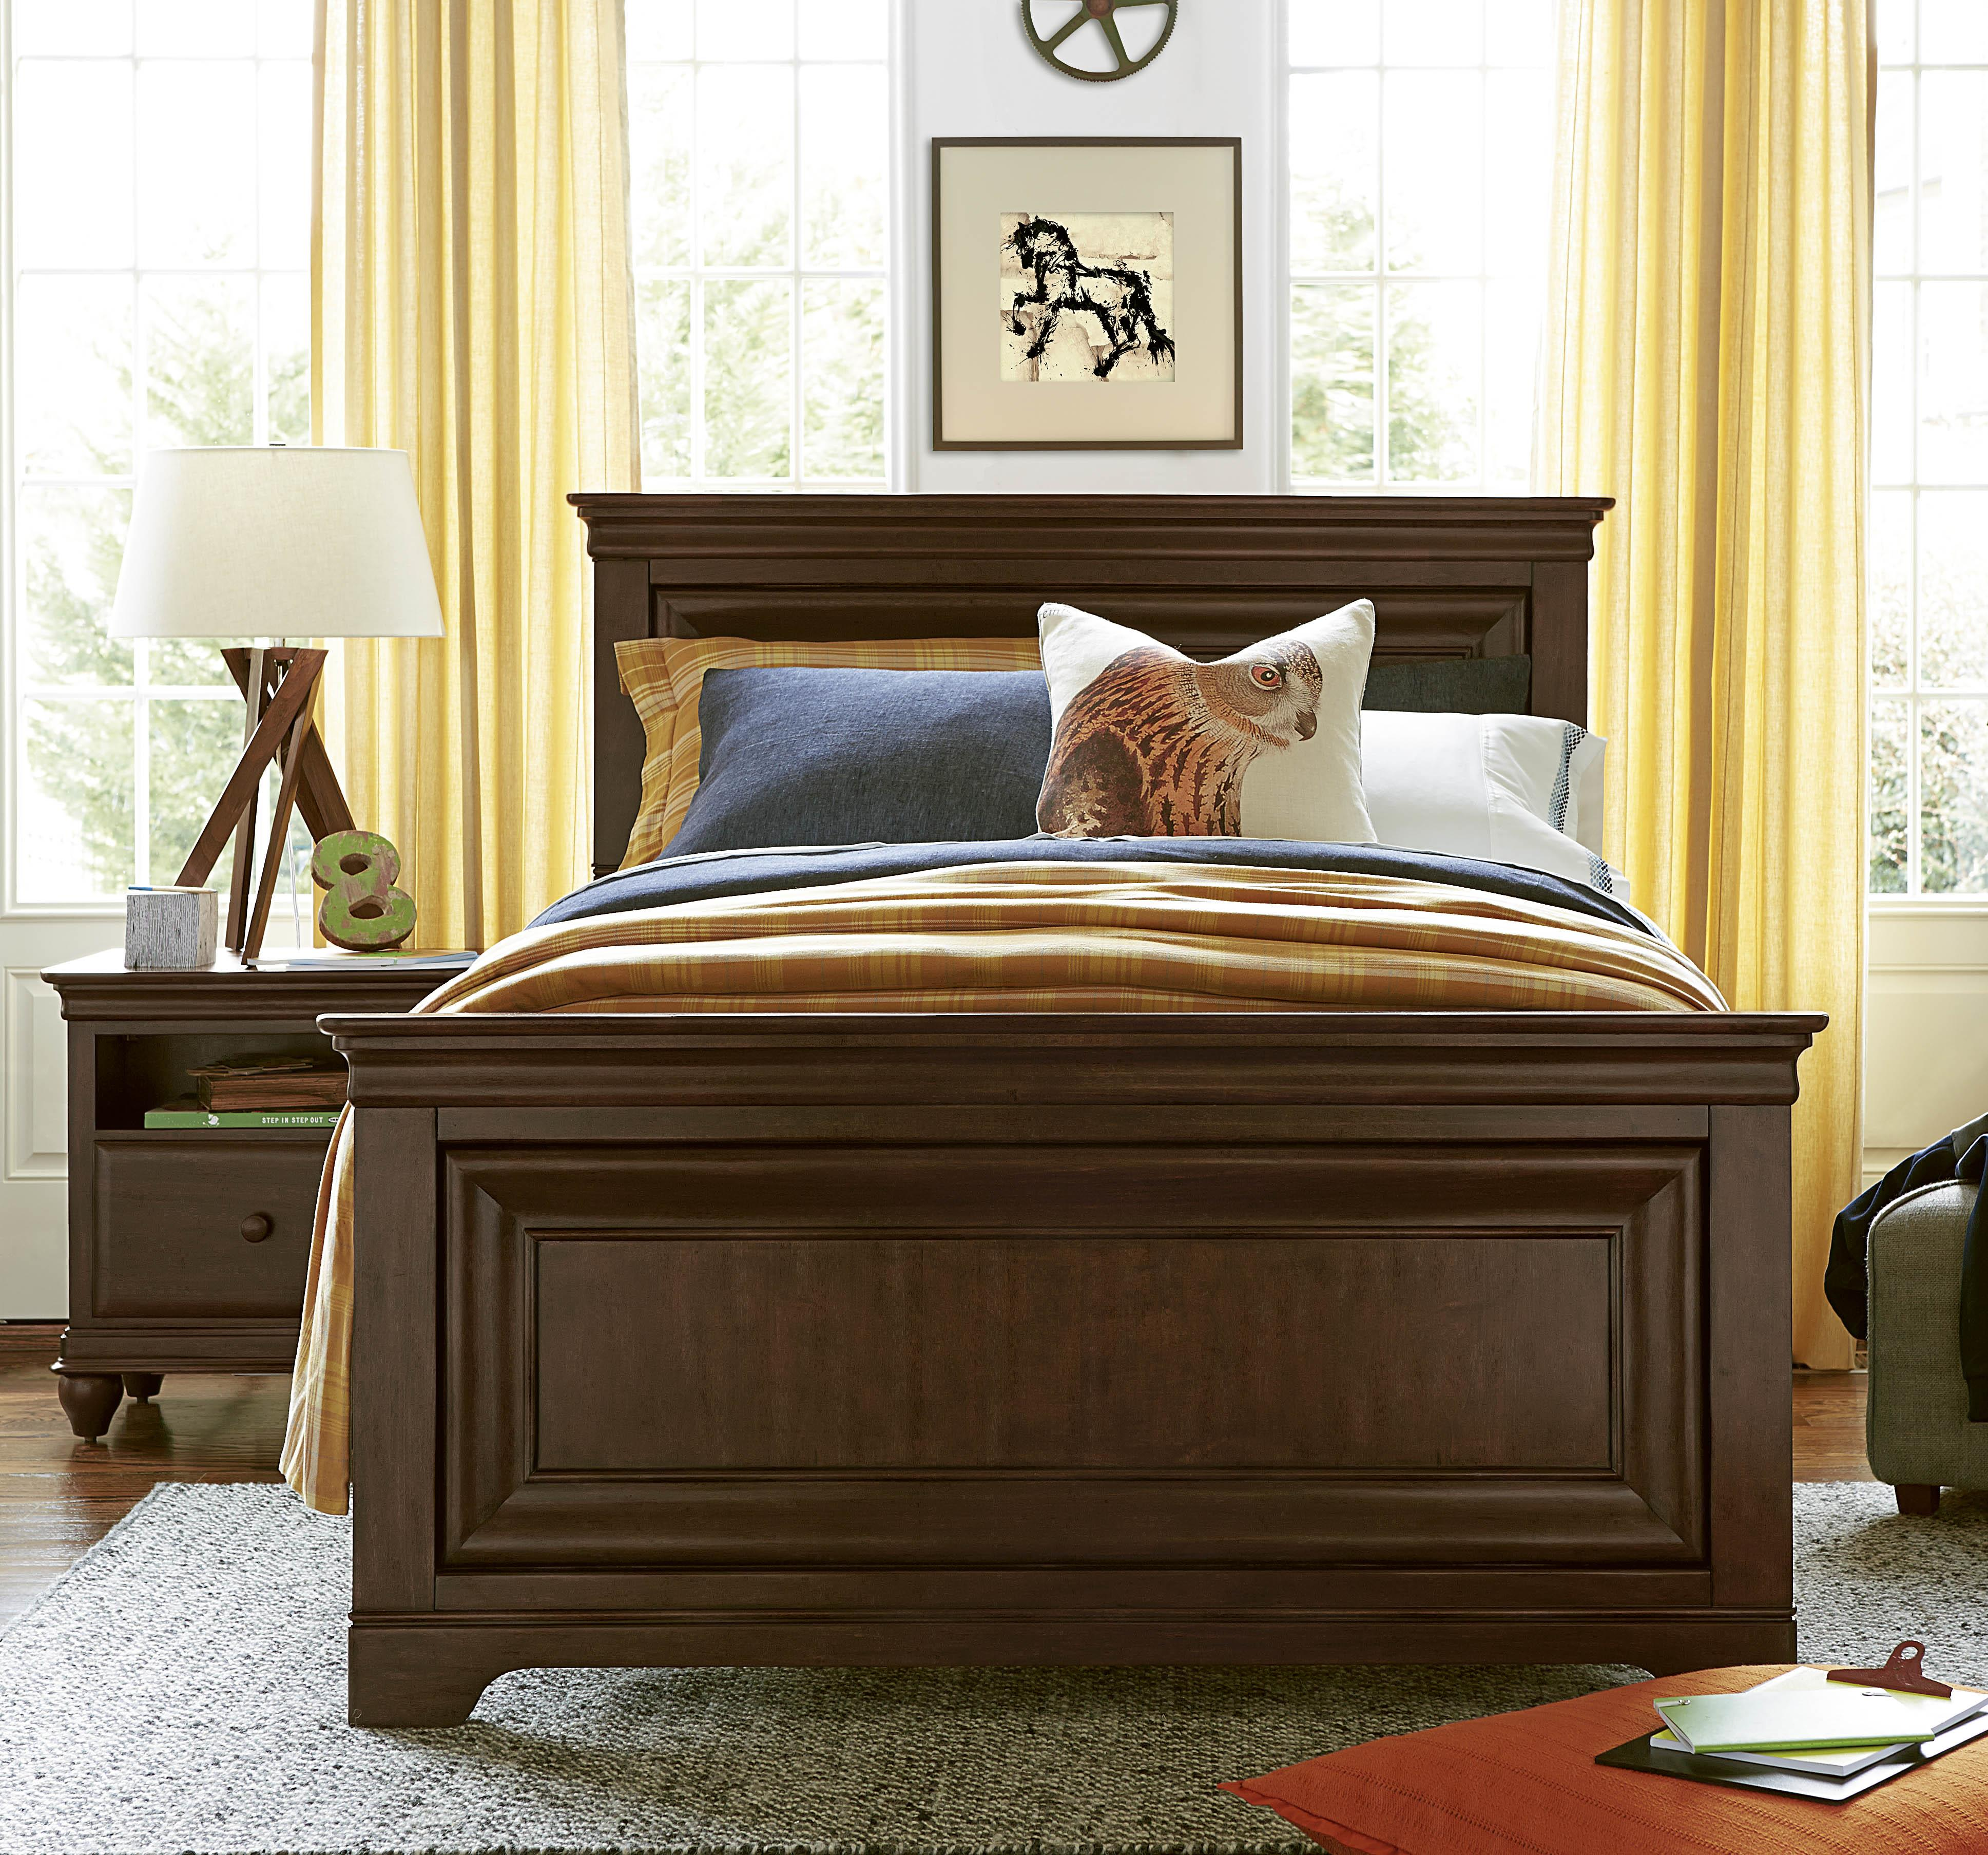 Smartstuff Classics 4.0 Twin Bedroom Group - Item Number: 1312 T Bedroom Group 2